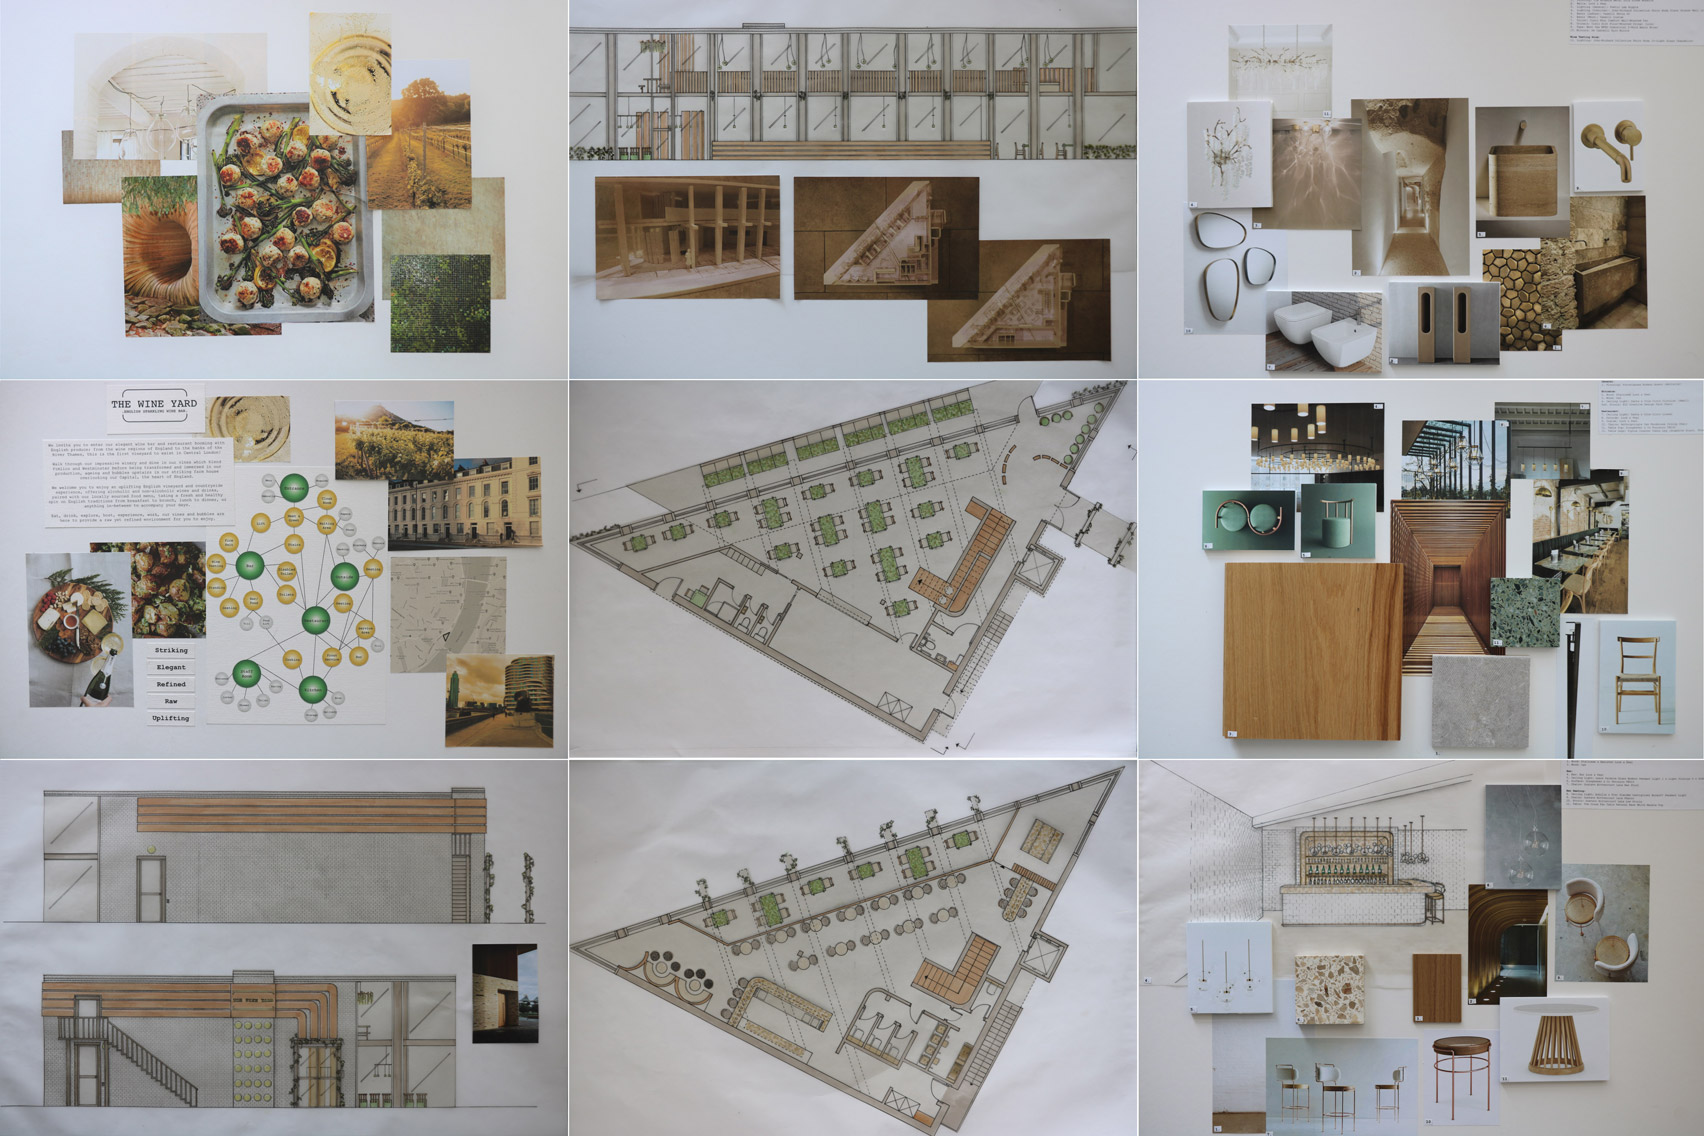 The Wine Yard: English Sparkling Wine Bar by UAL student Christine Newmanfor VDF student show